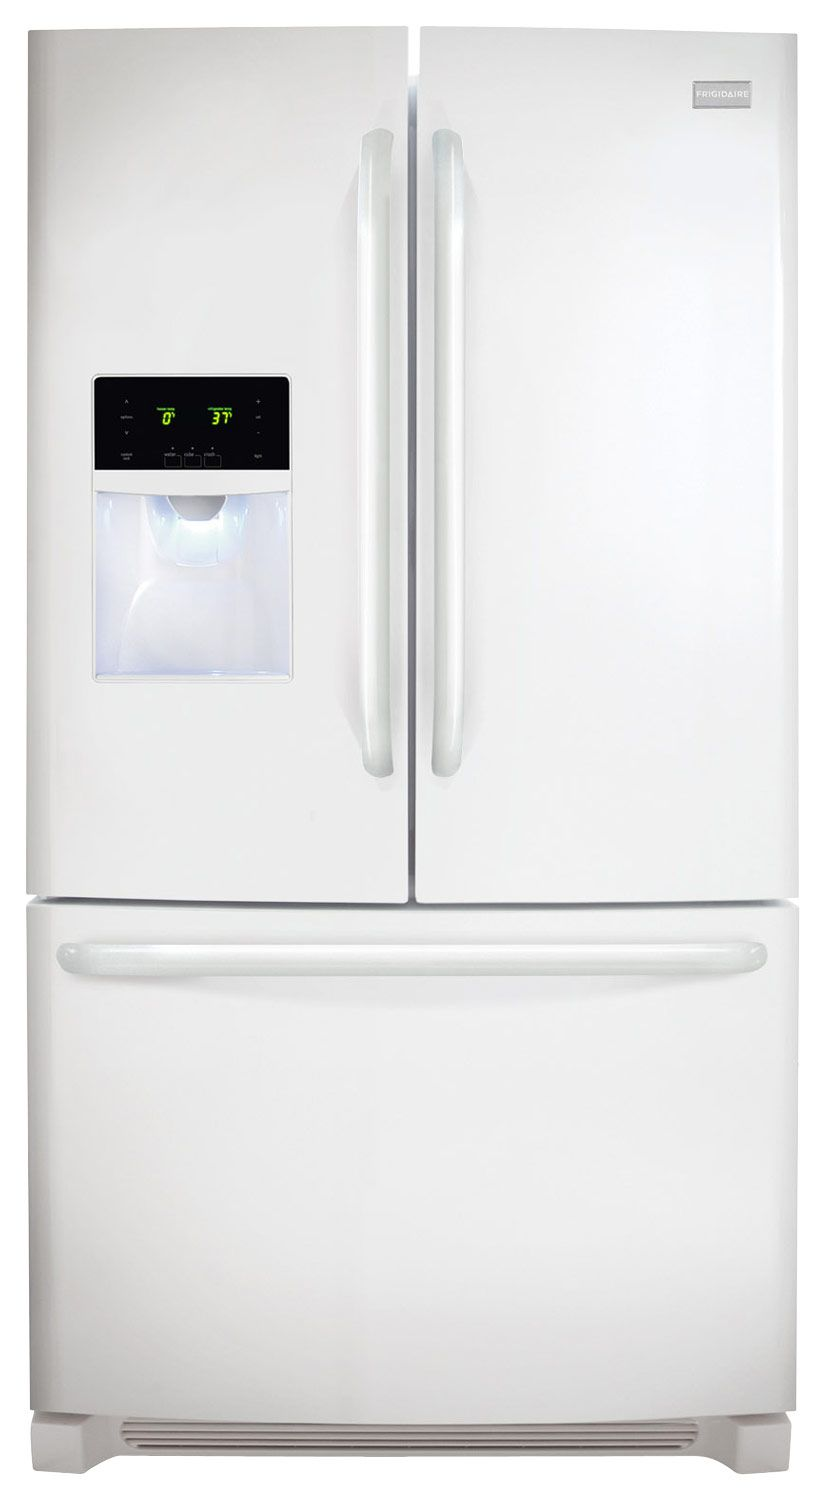 I like this from Best Buy White french door refrigerator